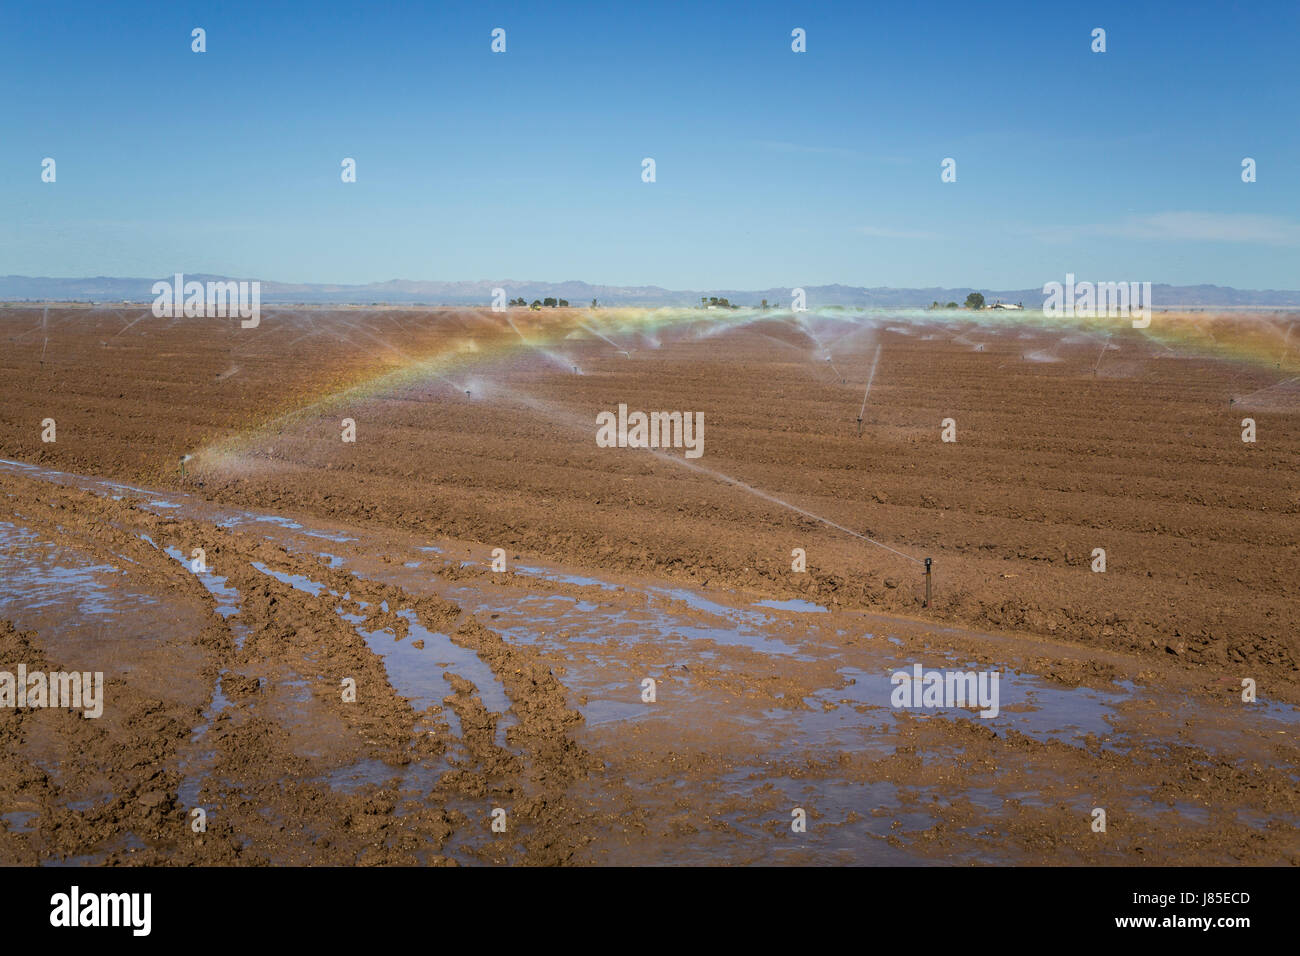 Field irrigation in the Imperial Valley of California, USA. - Stock Image